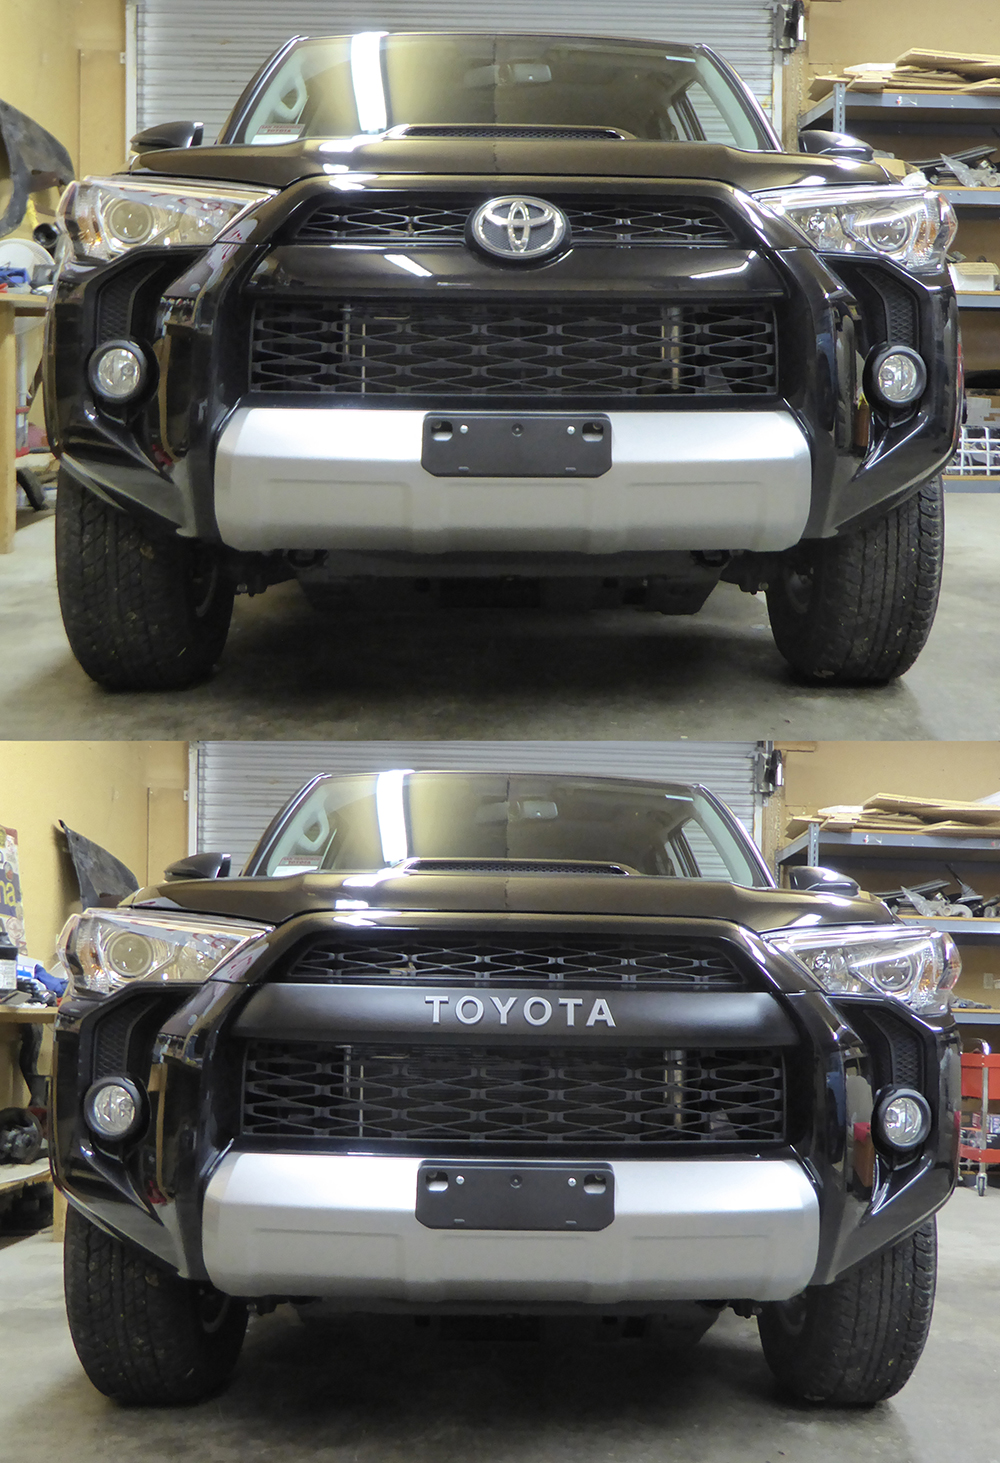 TRD Pro 4runner Grill Swap 5th Gen Before and After